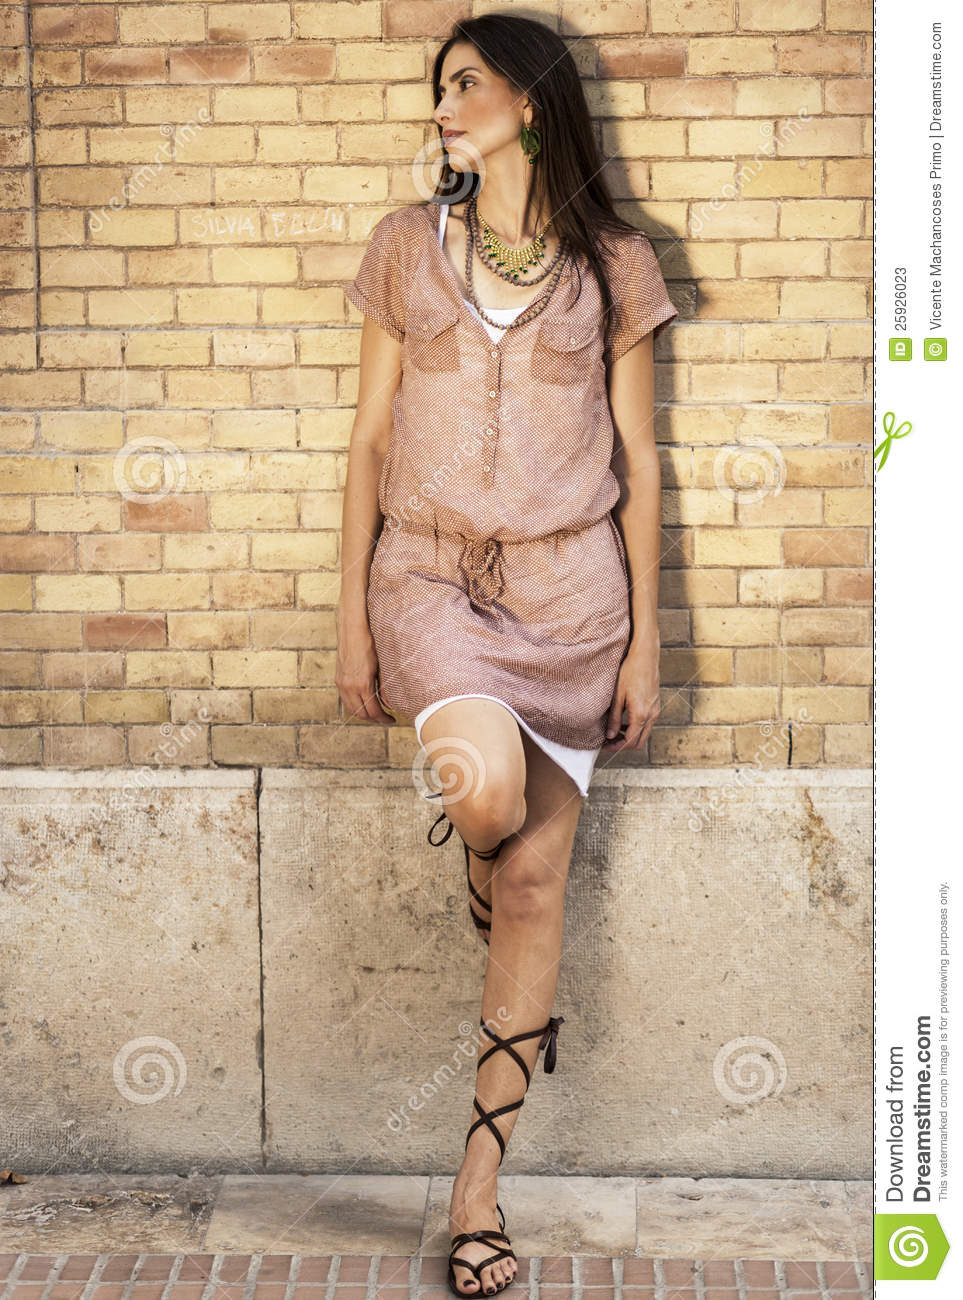 beatiful-woman-leaning-against-brick-wall-25926023.jpg